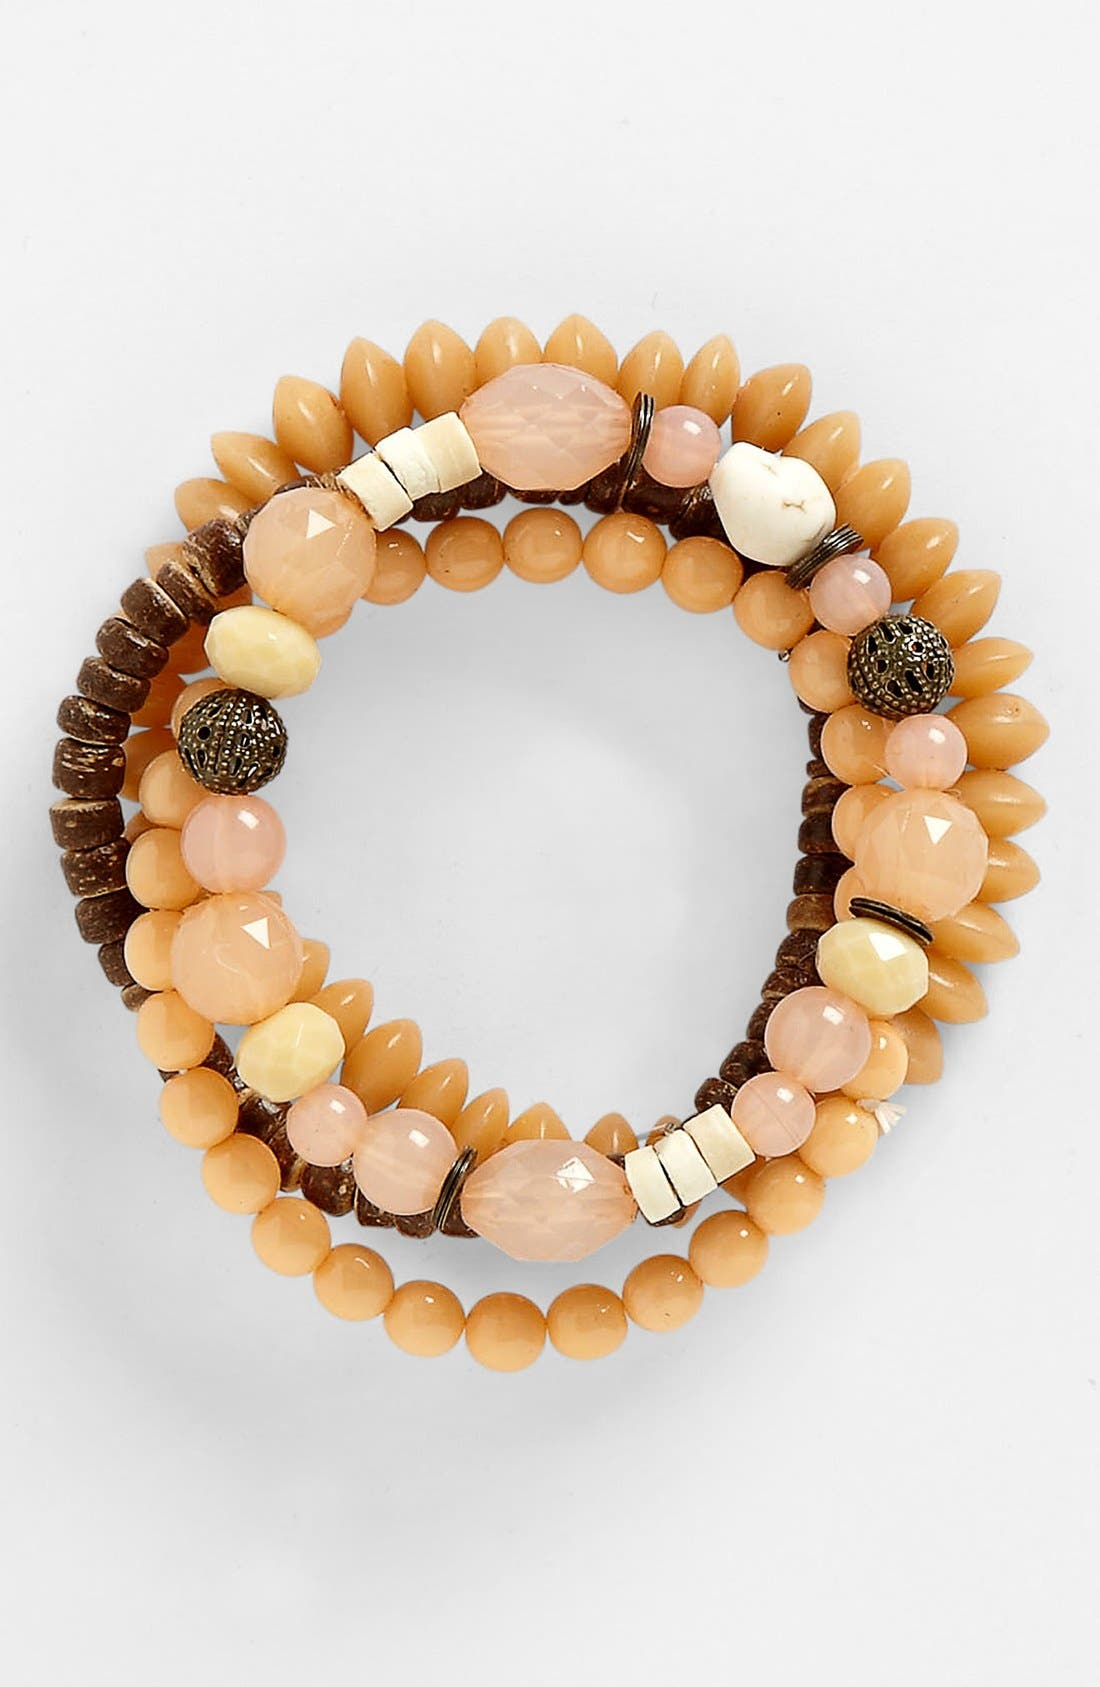 Alternate Image 1 Selected - Rachel 'Boho' Stretch Bracelets (Set of 4)